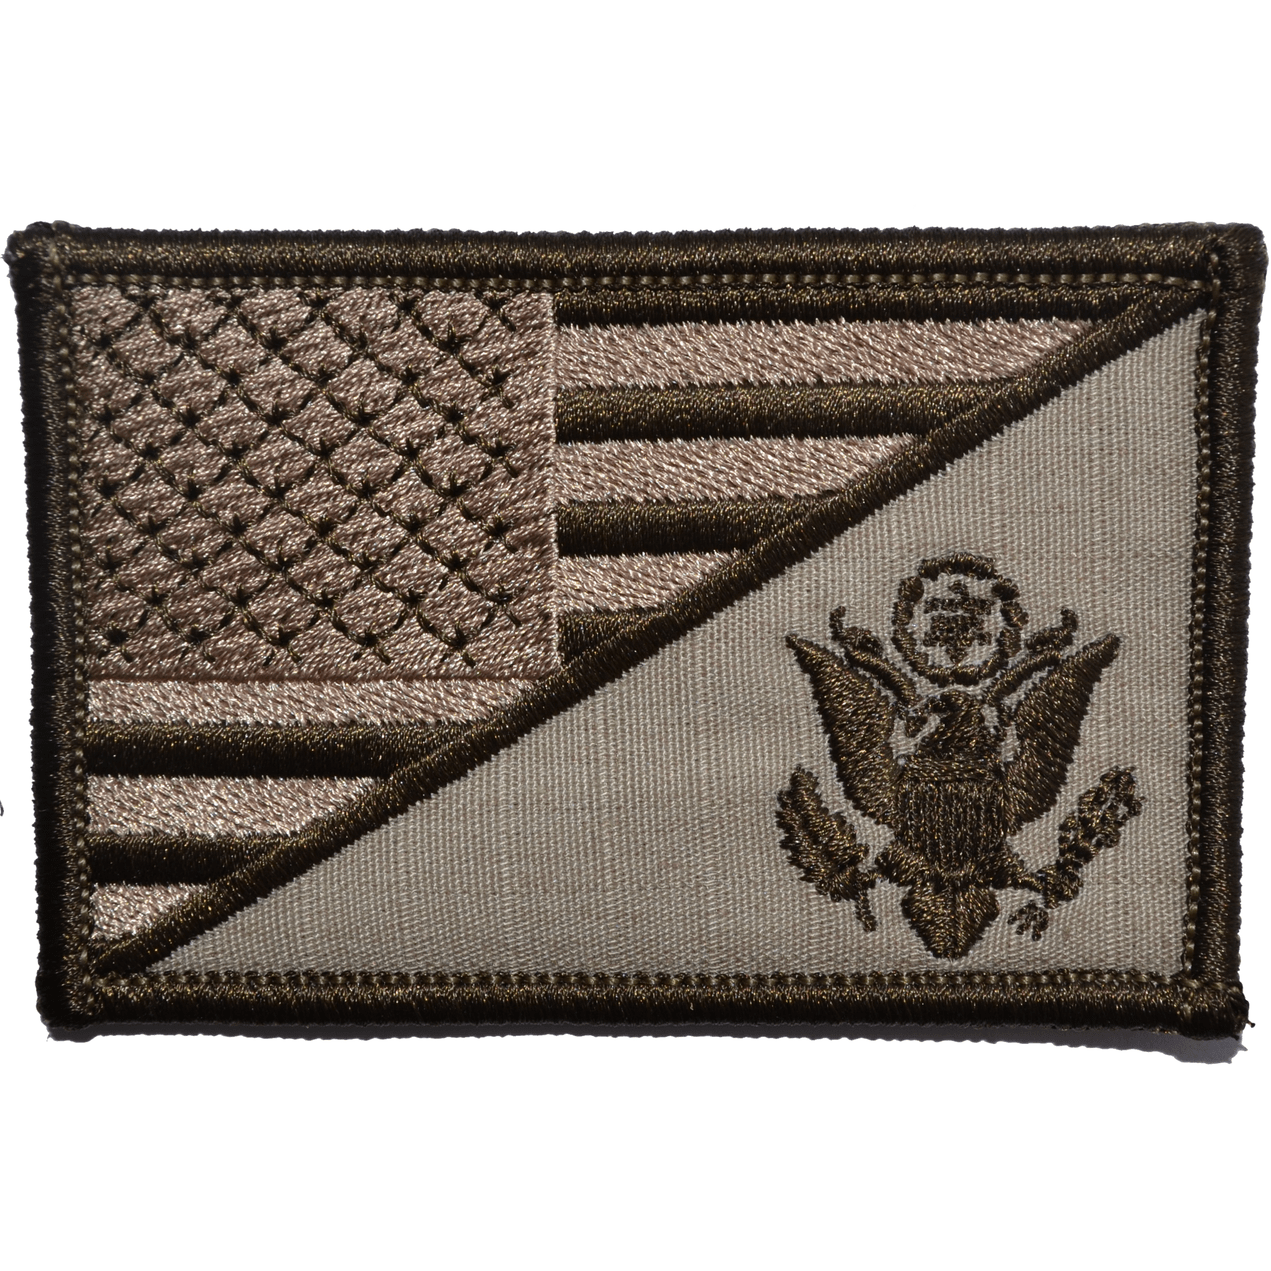 Tactical Gear Junkie Patches Desert Sand US Army Crest USA Flag - 2.25x3.5 Patch